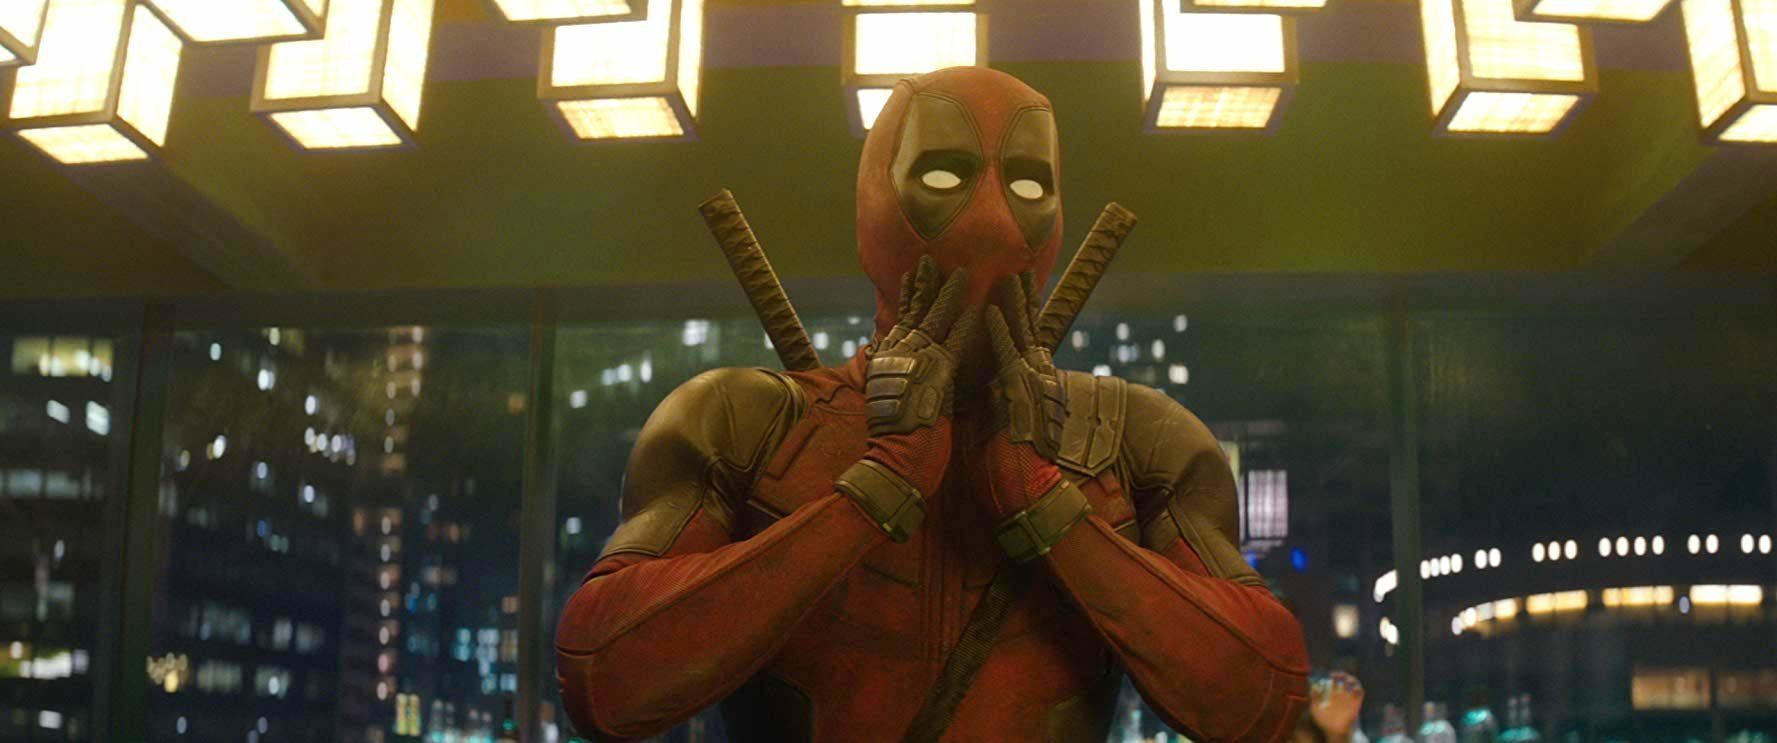 Some Mormons Are Raising Holy Heck Over New 'Deadpool' Promo